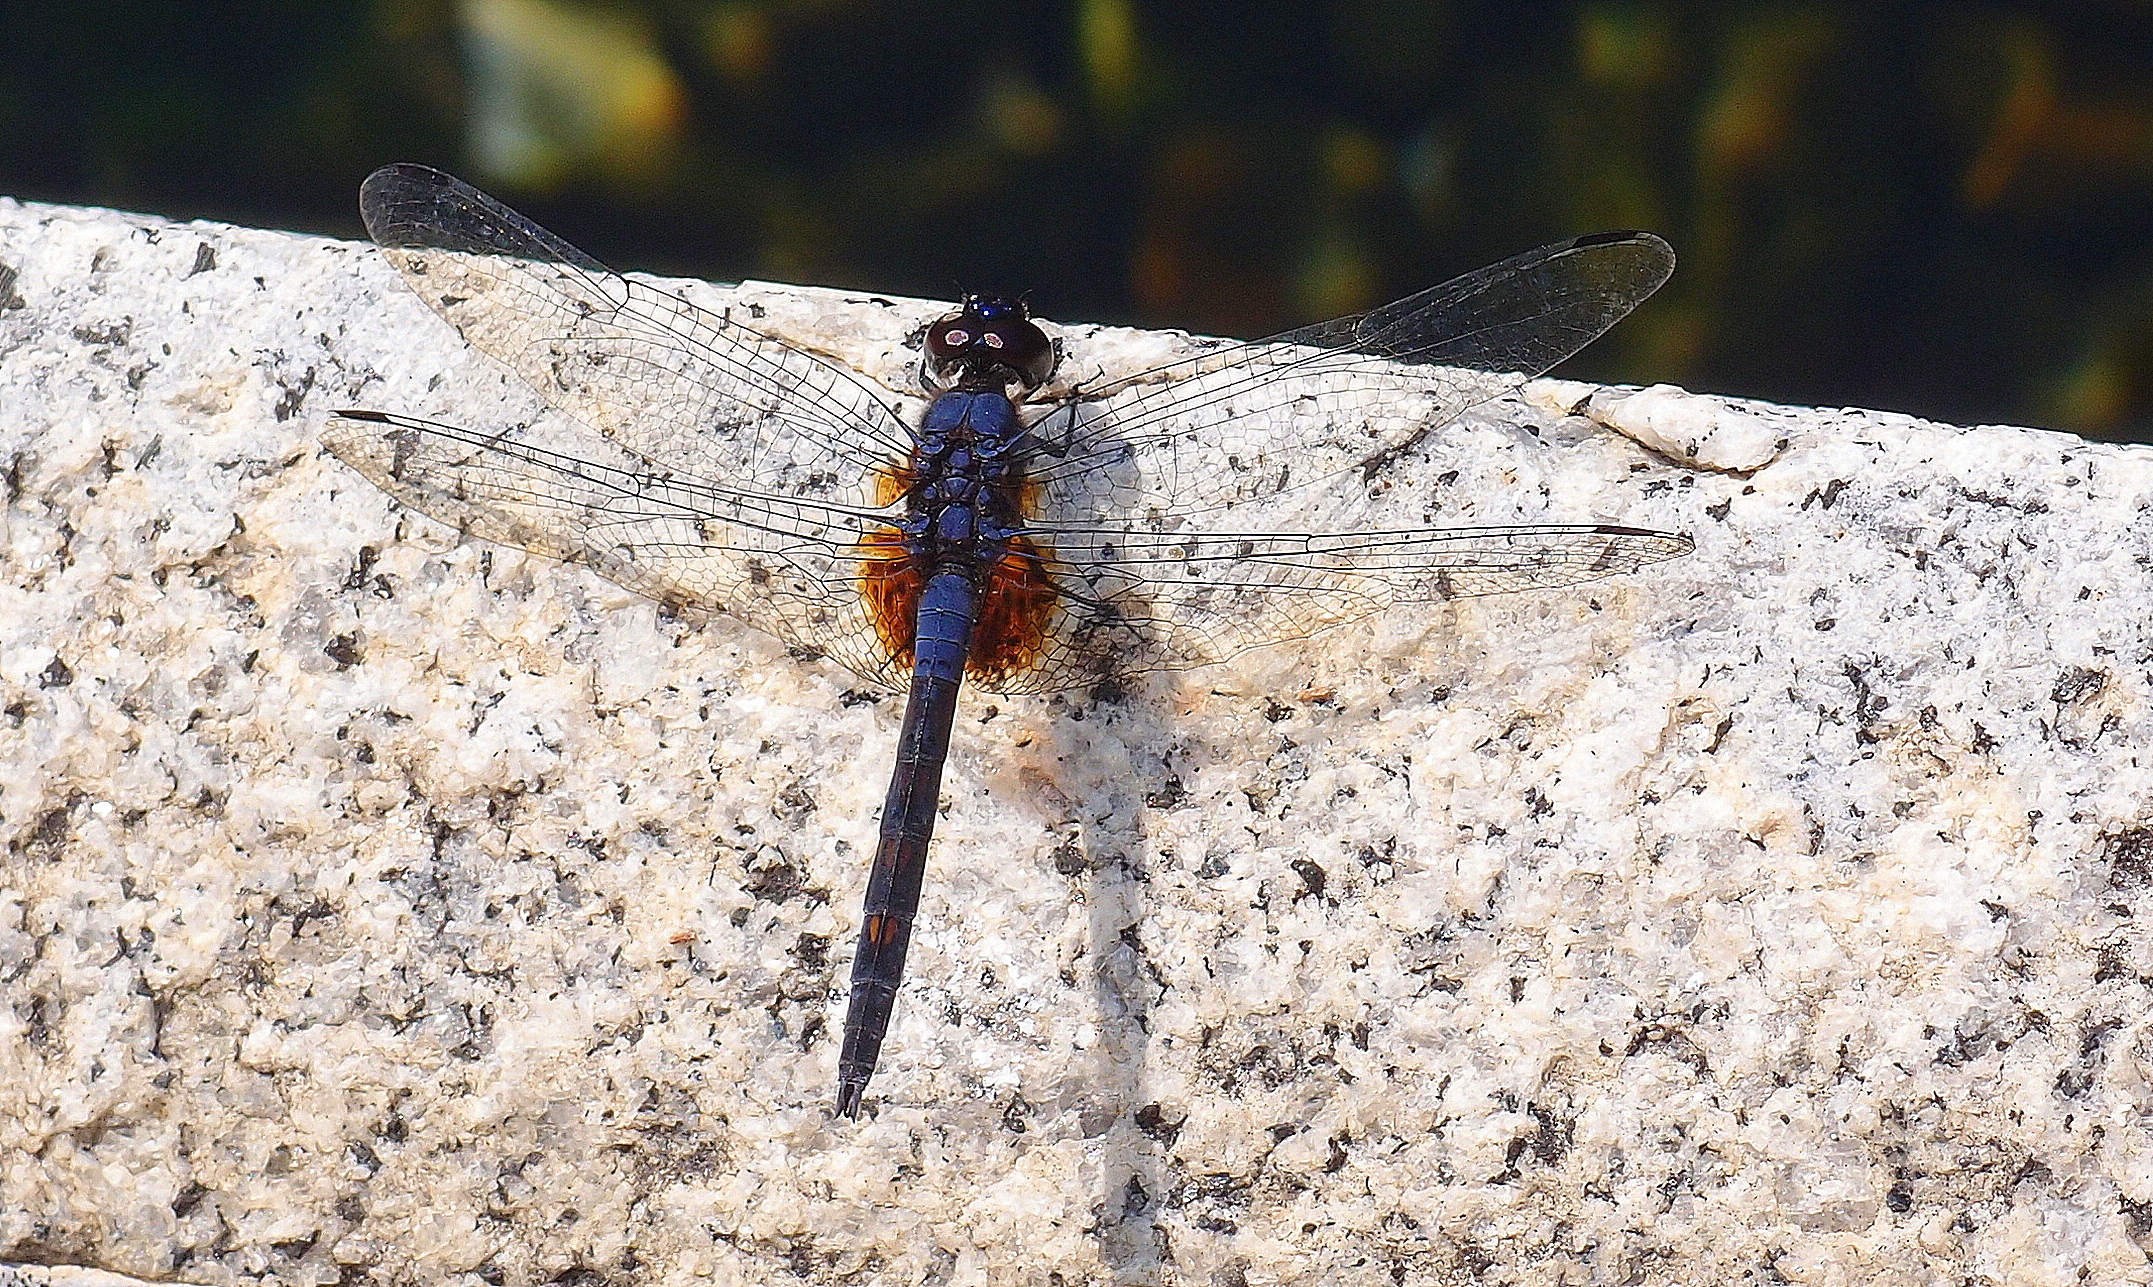 Ha, I finally get a shot of the elusive dragonfly